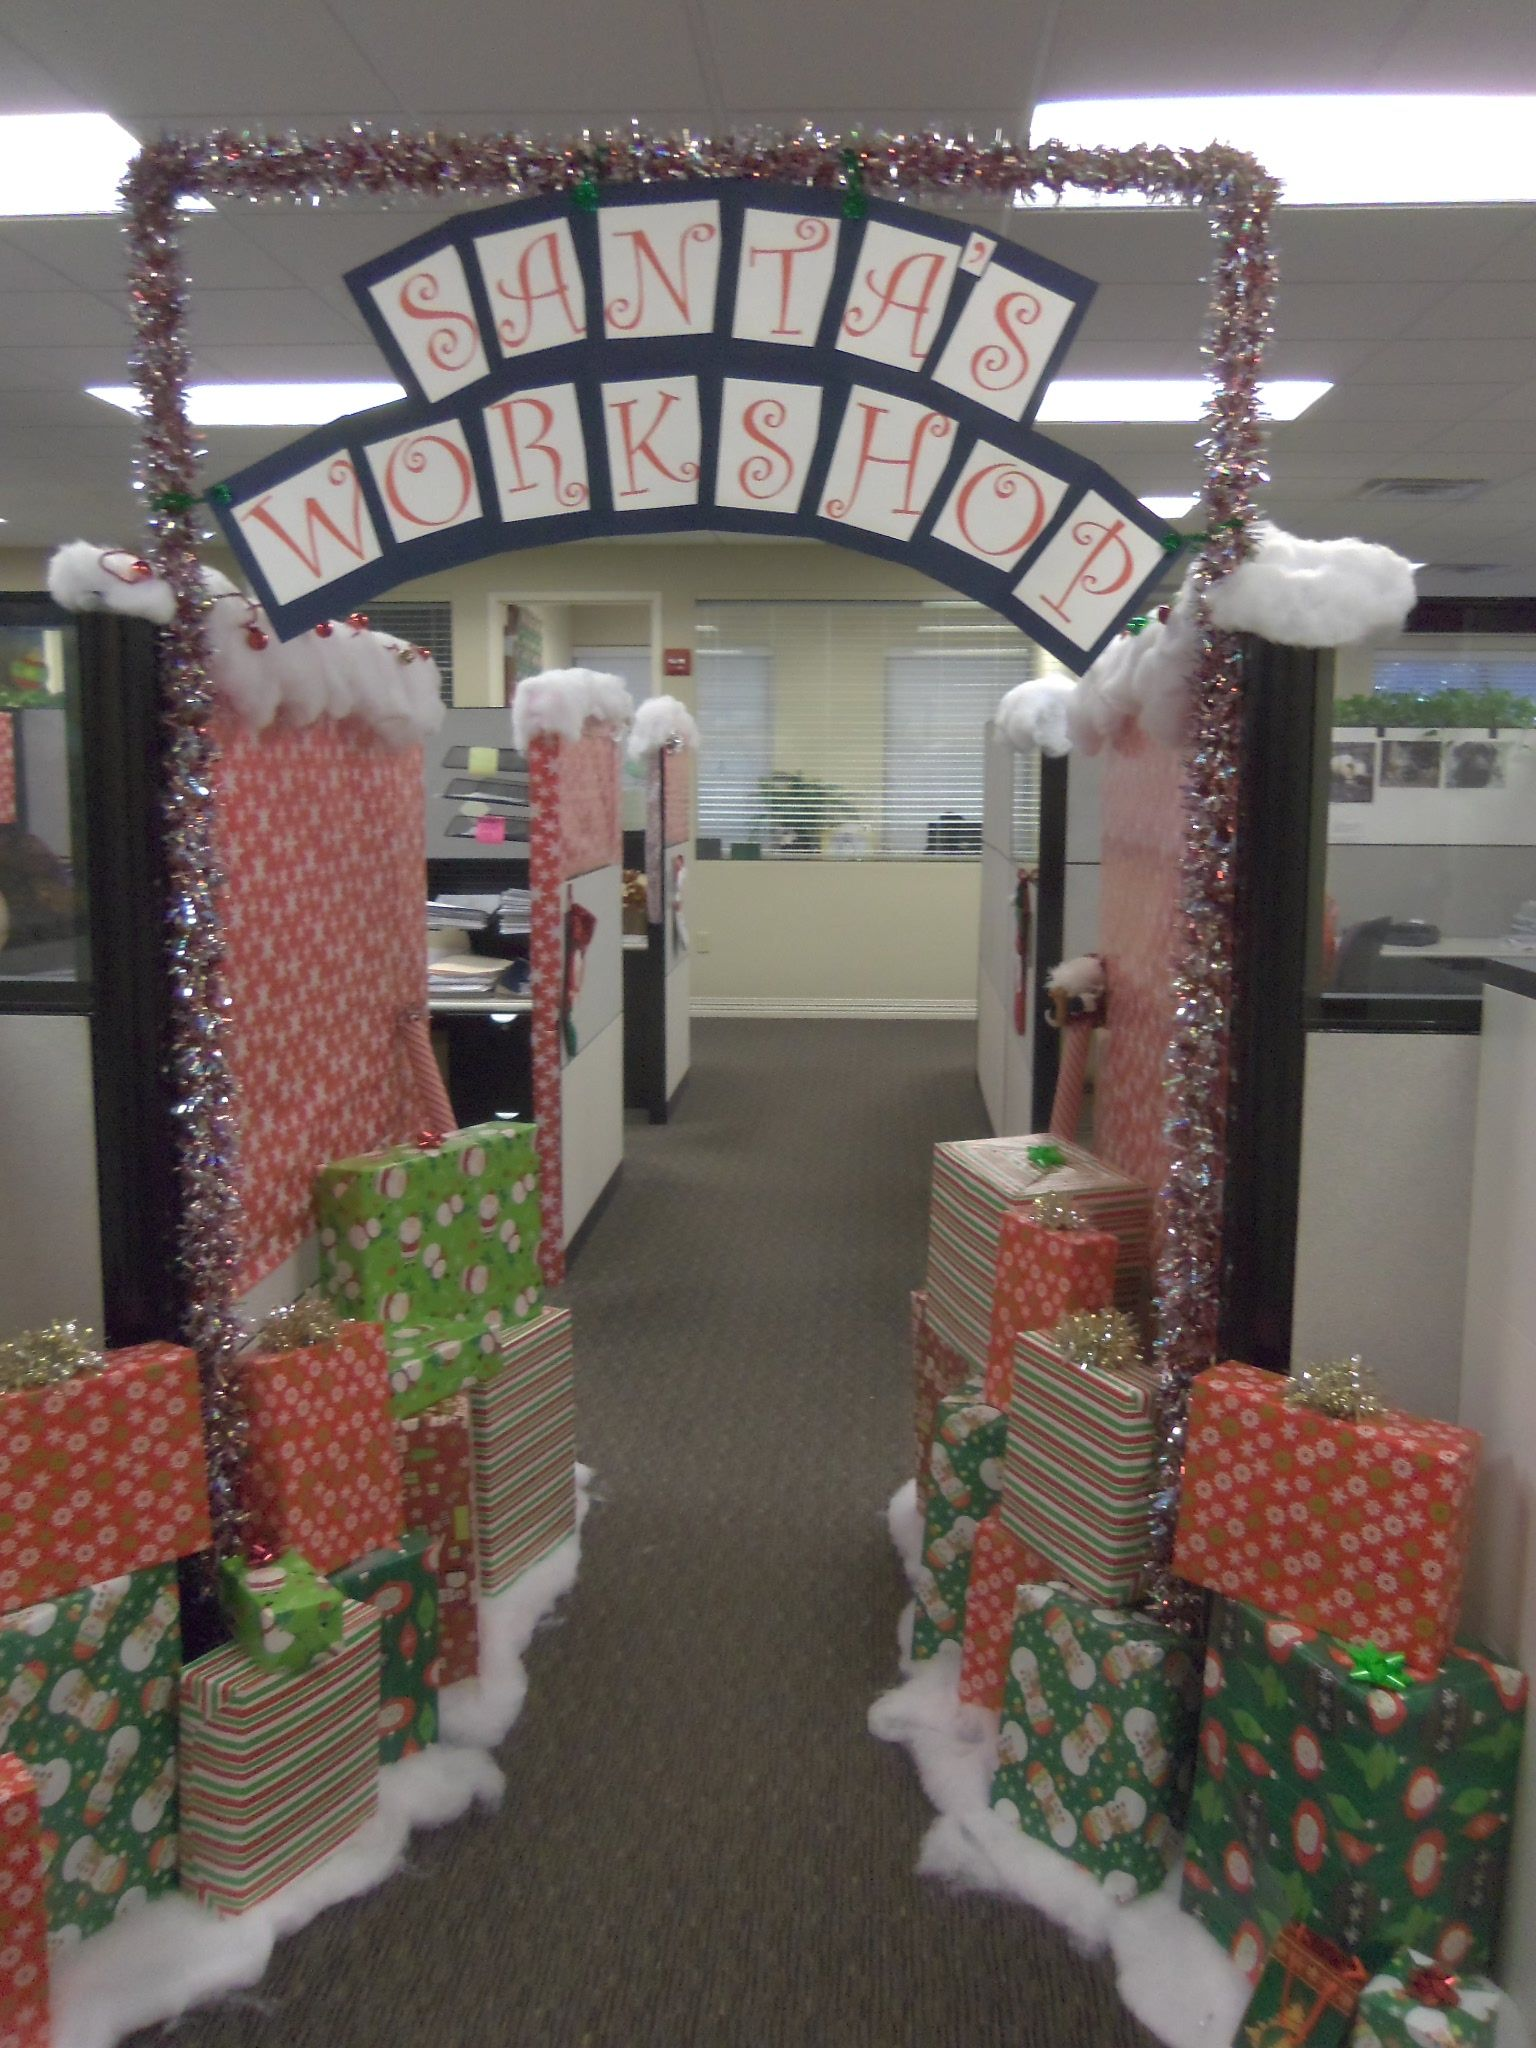 Christmas decorations can boost morale at the office. Leland ...